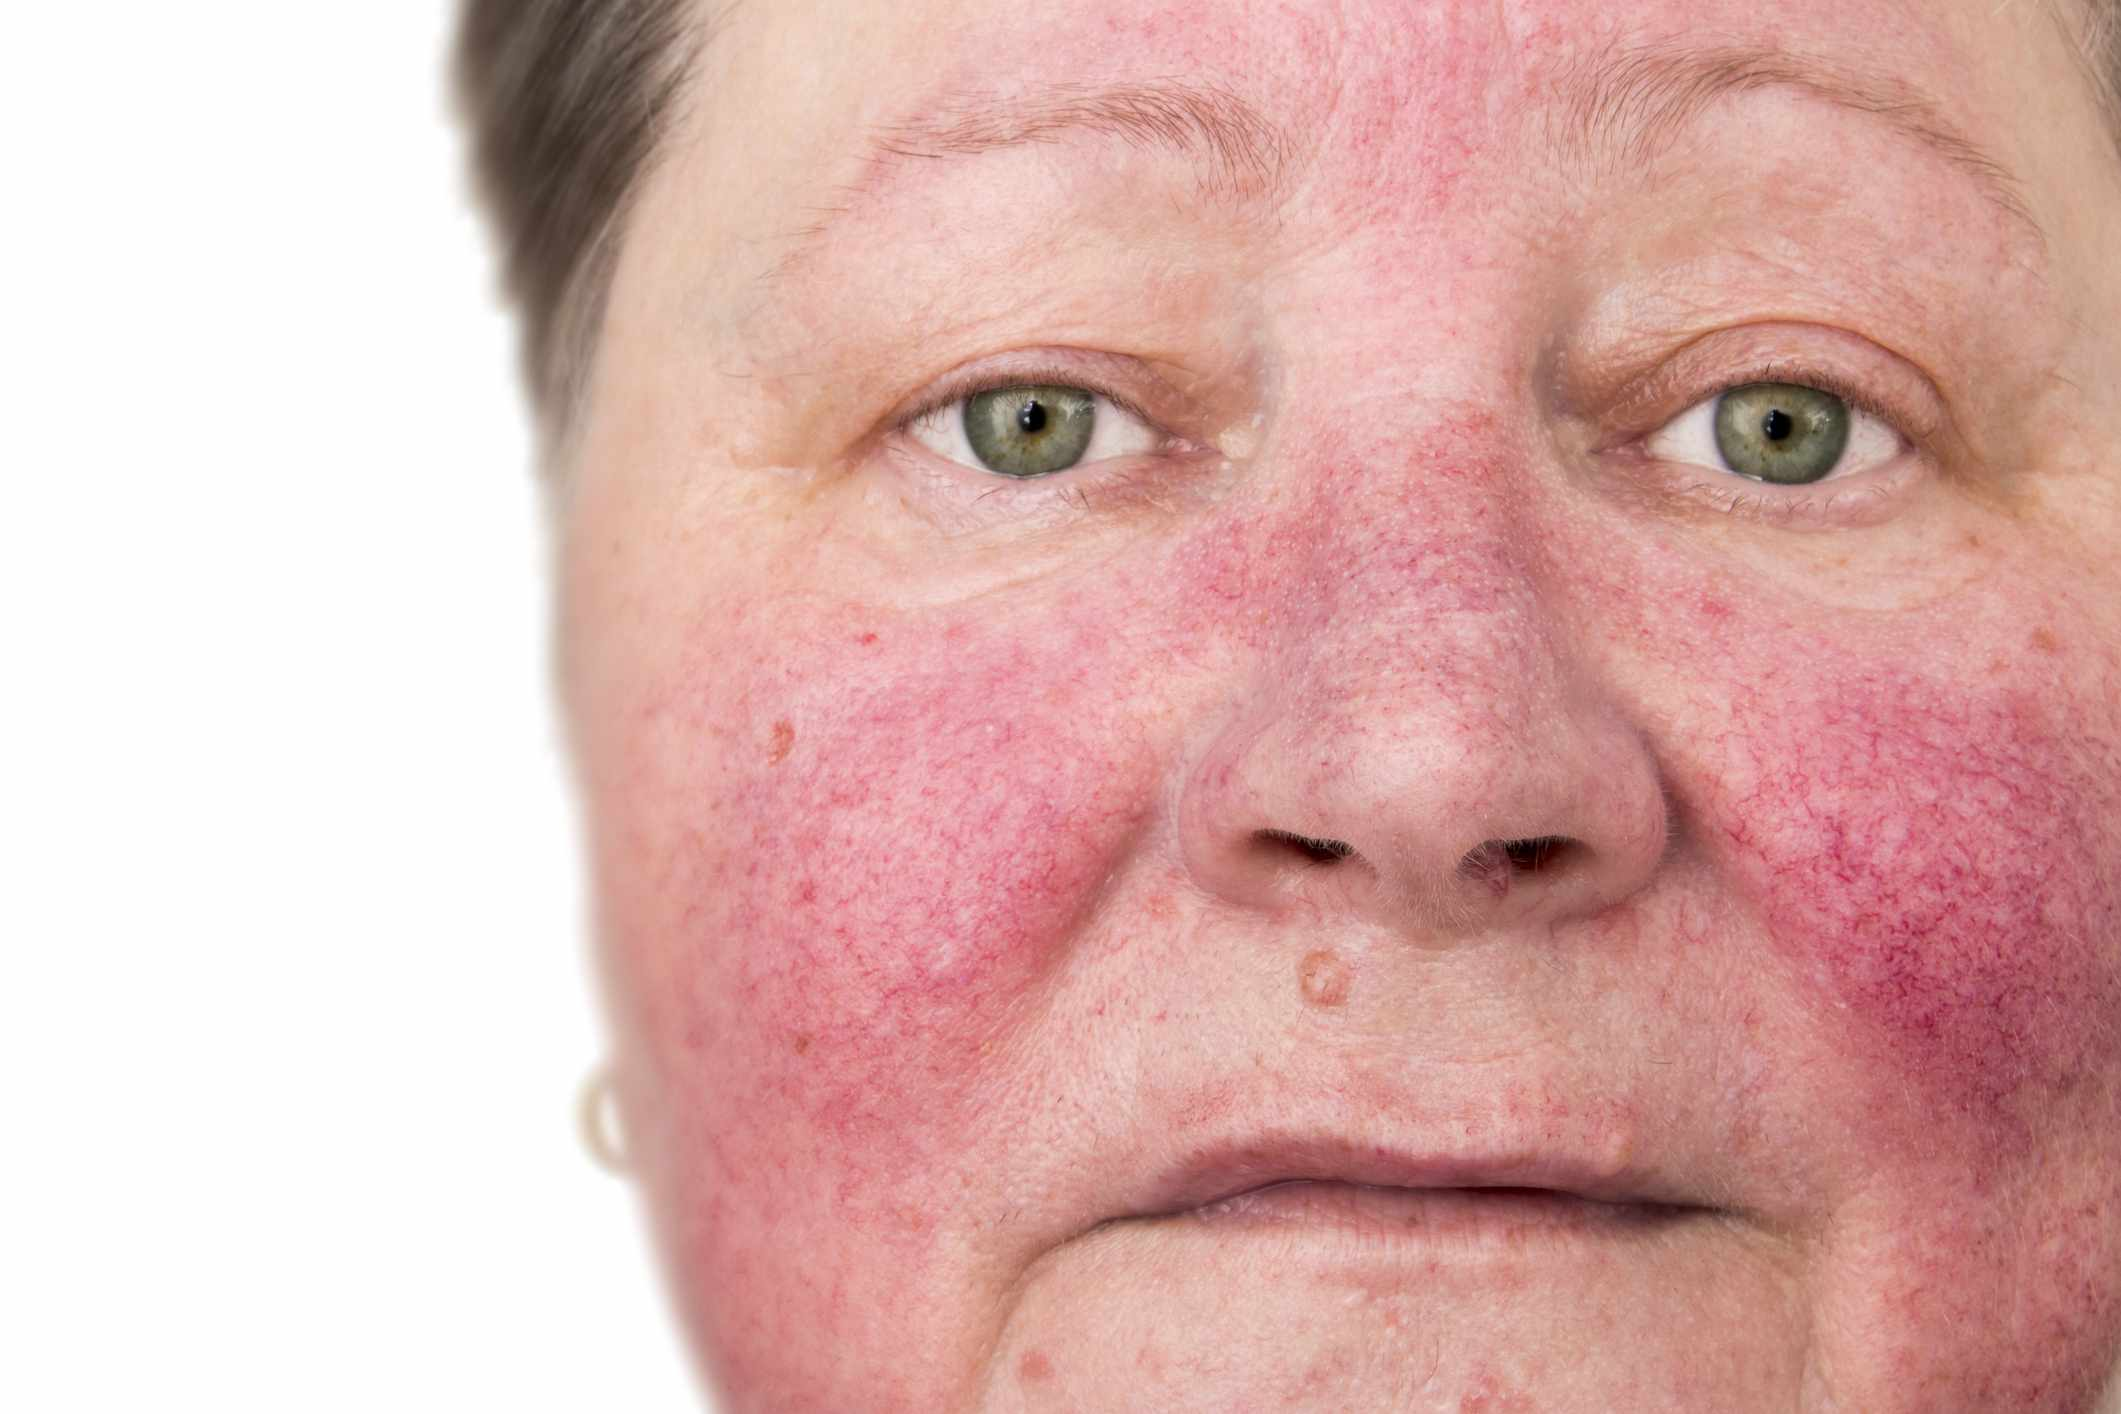 Person with rosacea, red skin on face